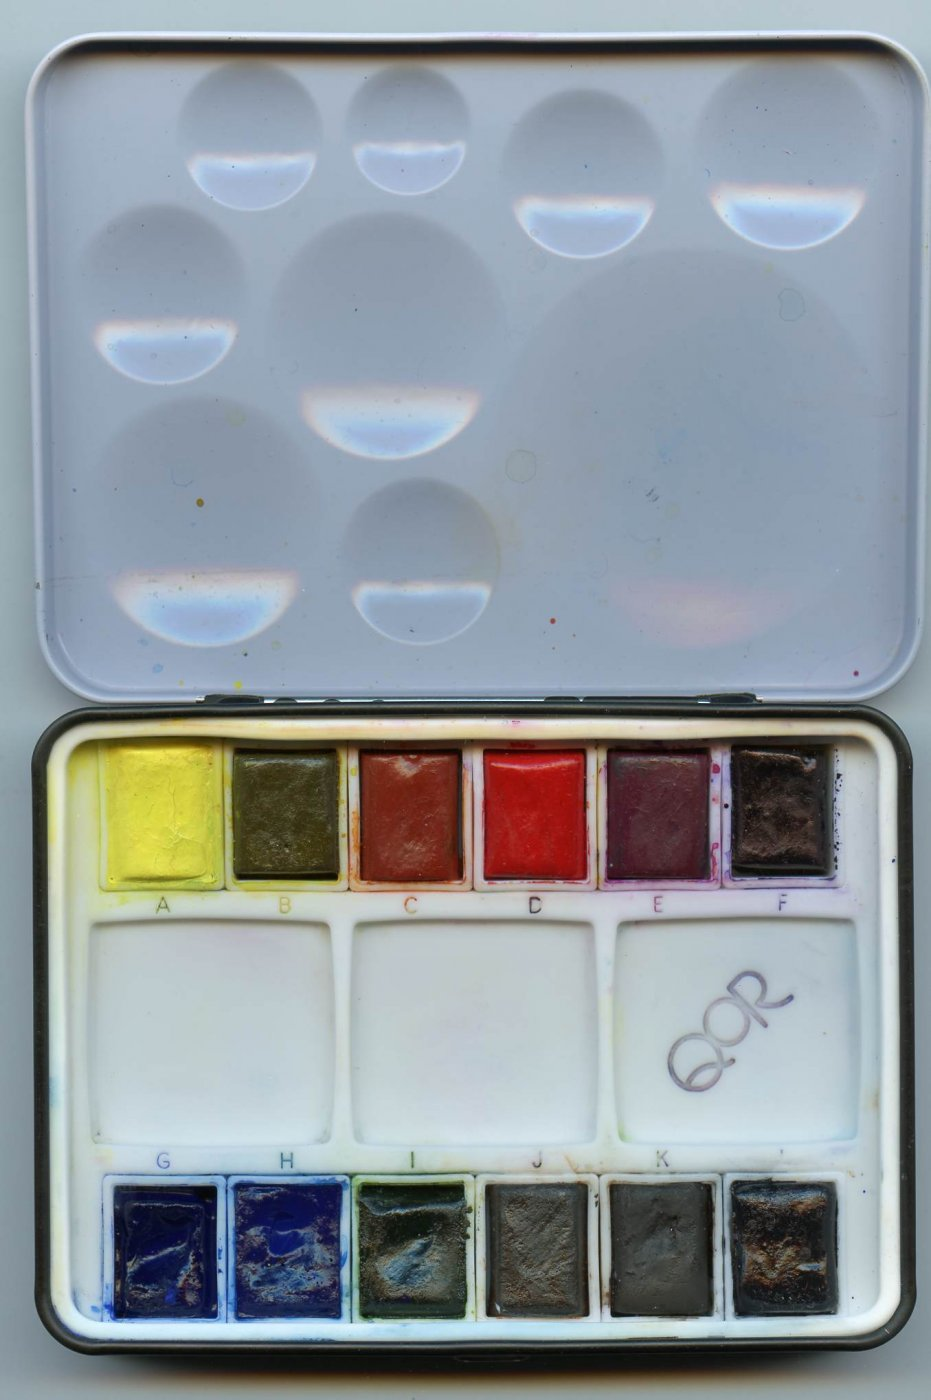 QoR Mini Palette Interior View